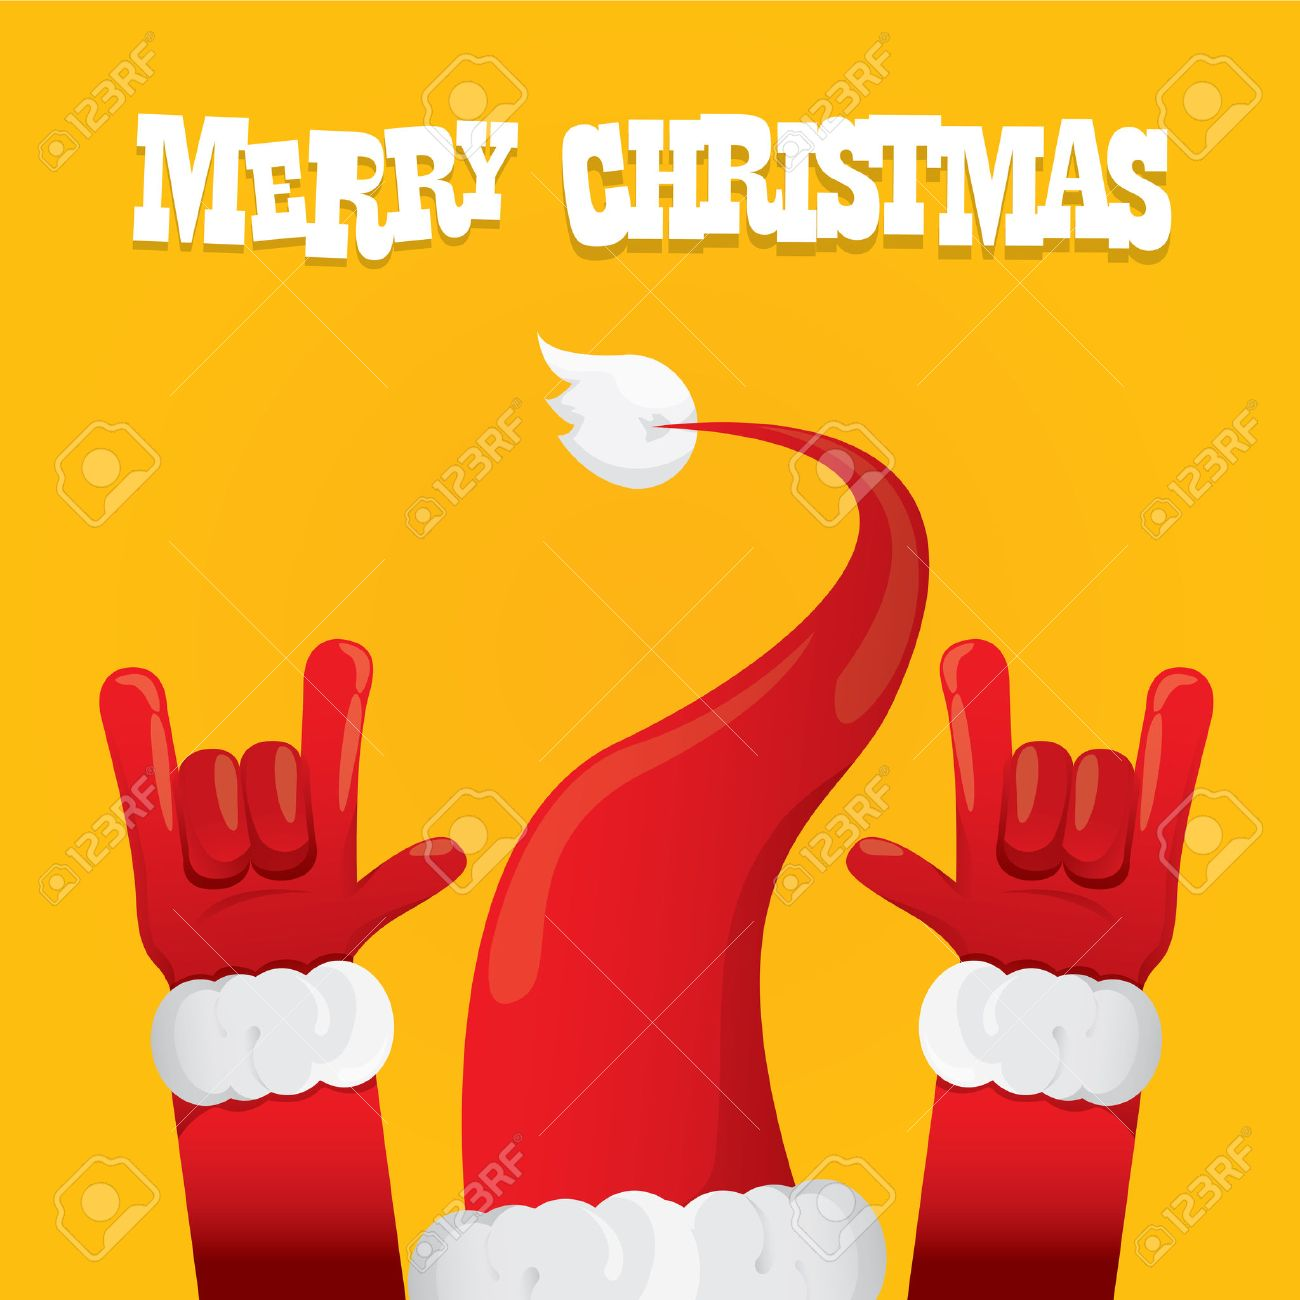 Christmas Rock.Santa Claus Hand Rock N Roll Icon Illustration Christmas Rock